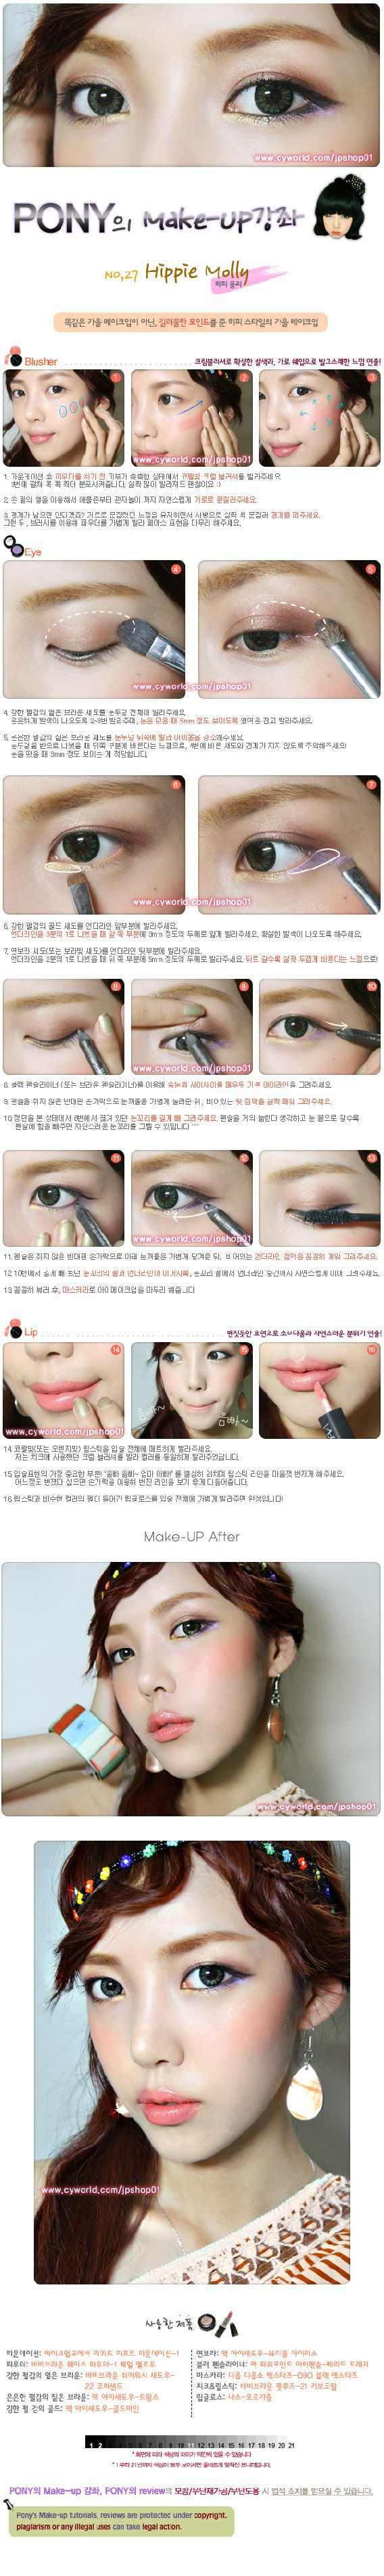 Ulzzang Pony Make Up